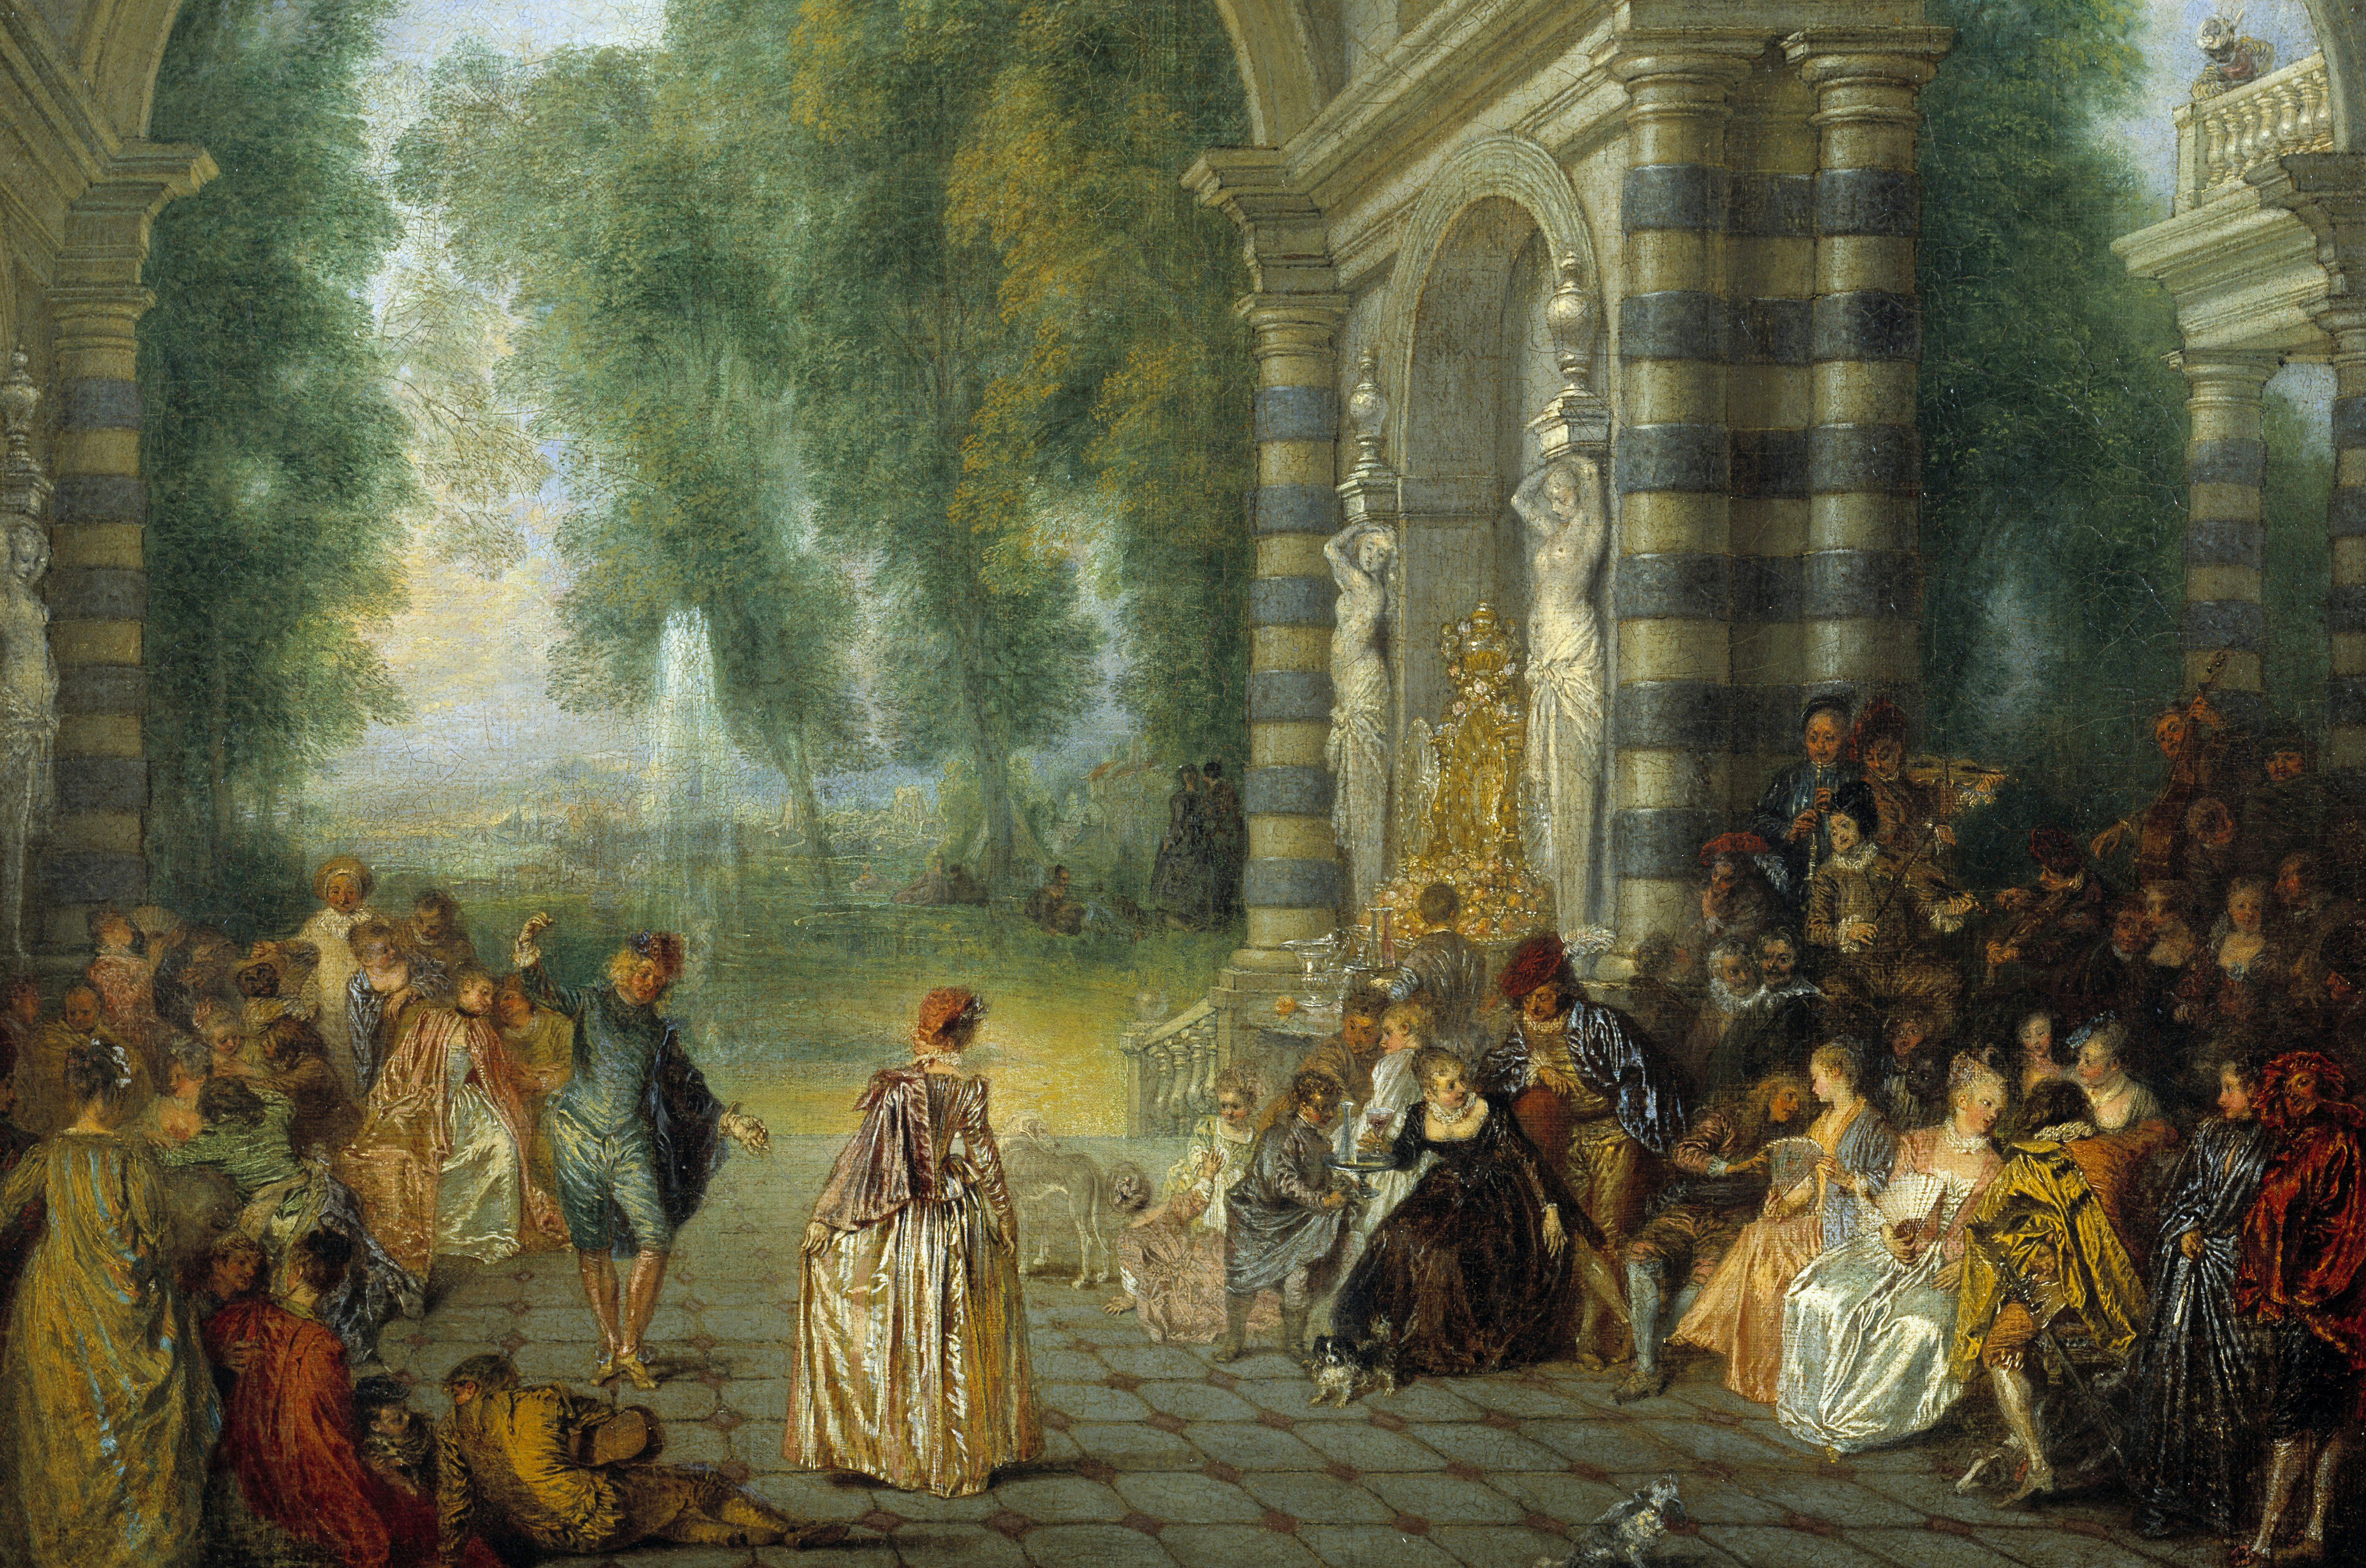 Brightly colored, highly details rococo era painting of many people standing and sitting around large, striped columns